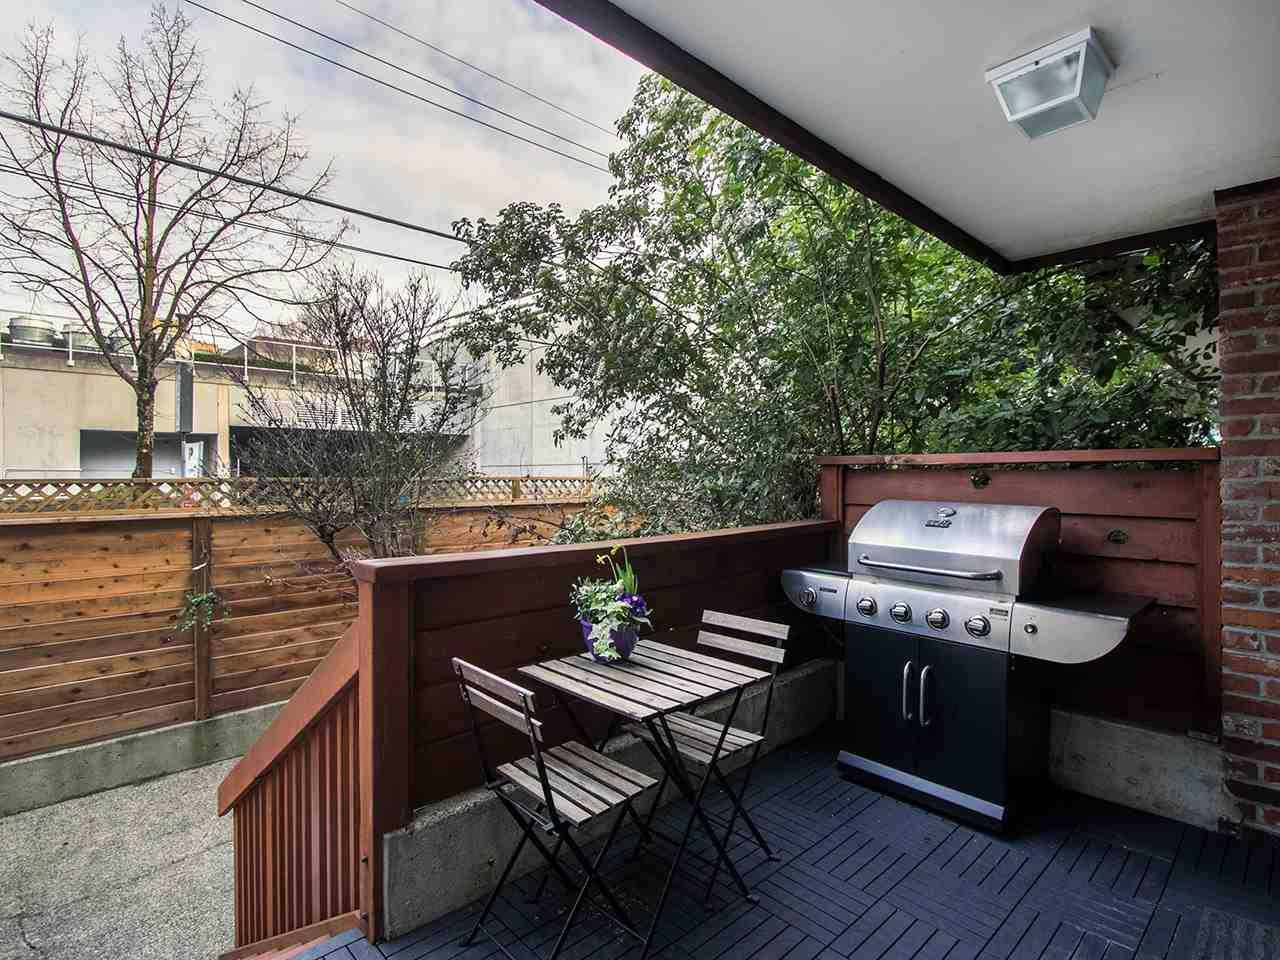 Photo 15: 101 1775 W 10TH AVENUE in Vancouver: Fairview VW Condo for sale (Vancouver West)  : MLS® # R2038742